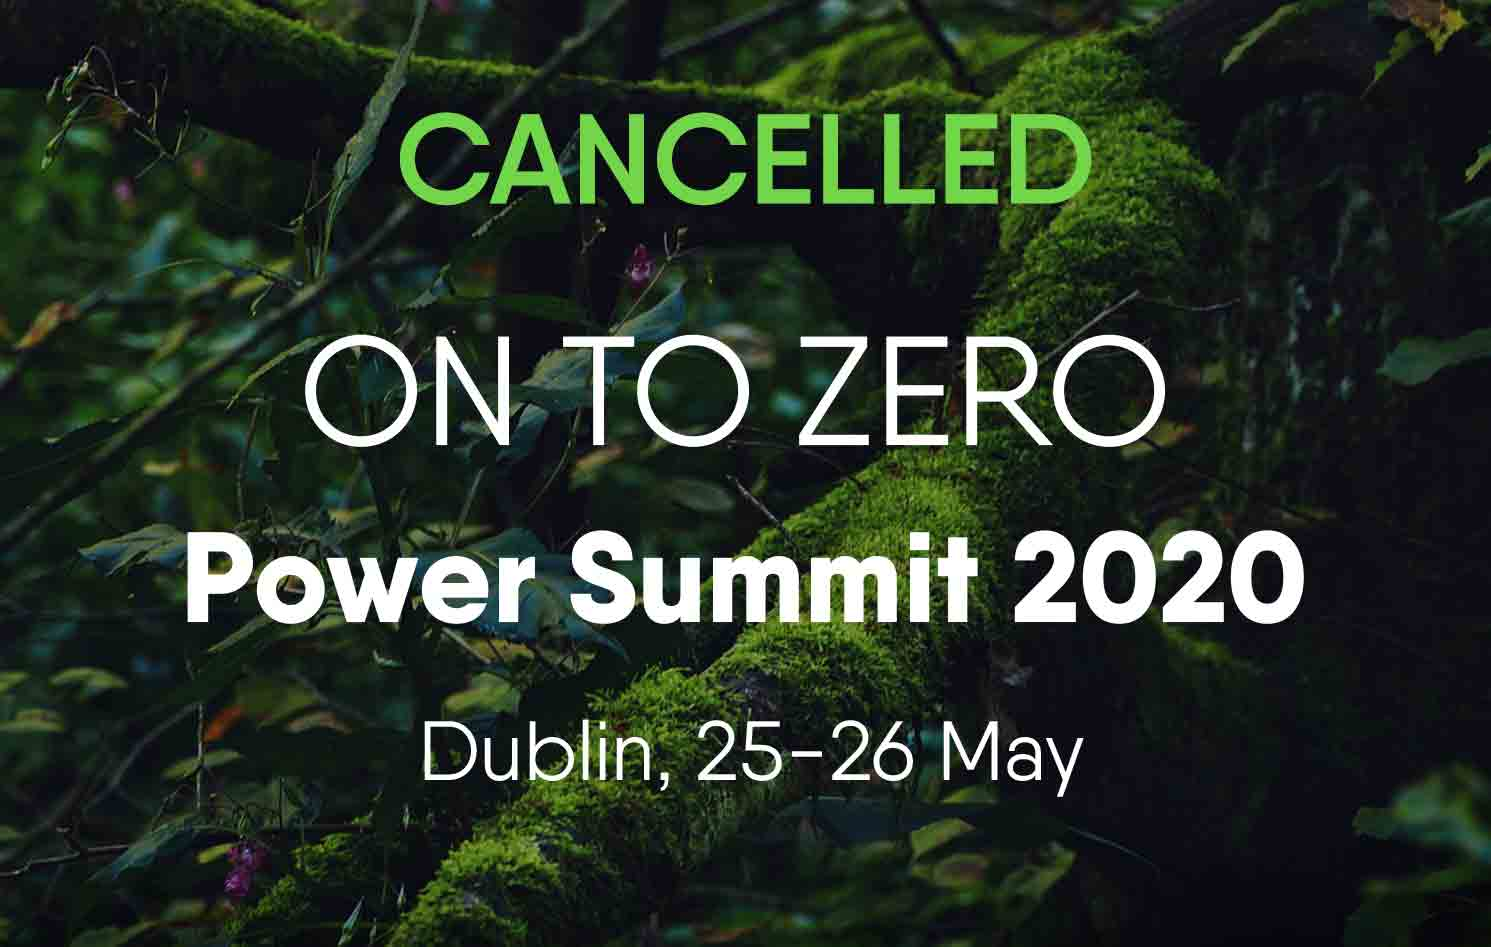 Power Summit 2020 Cancelled